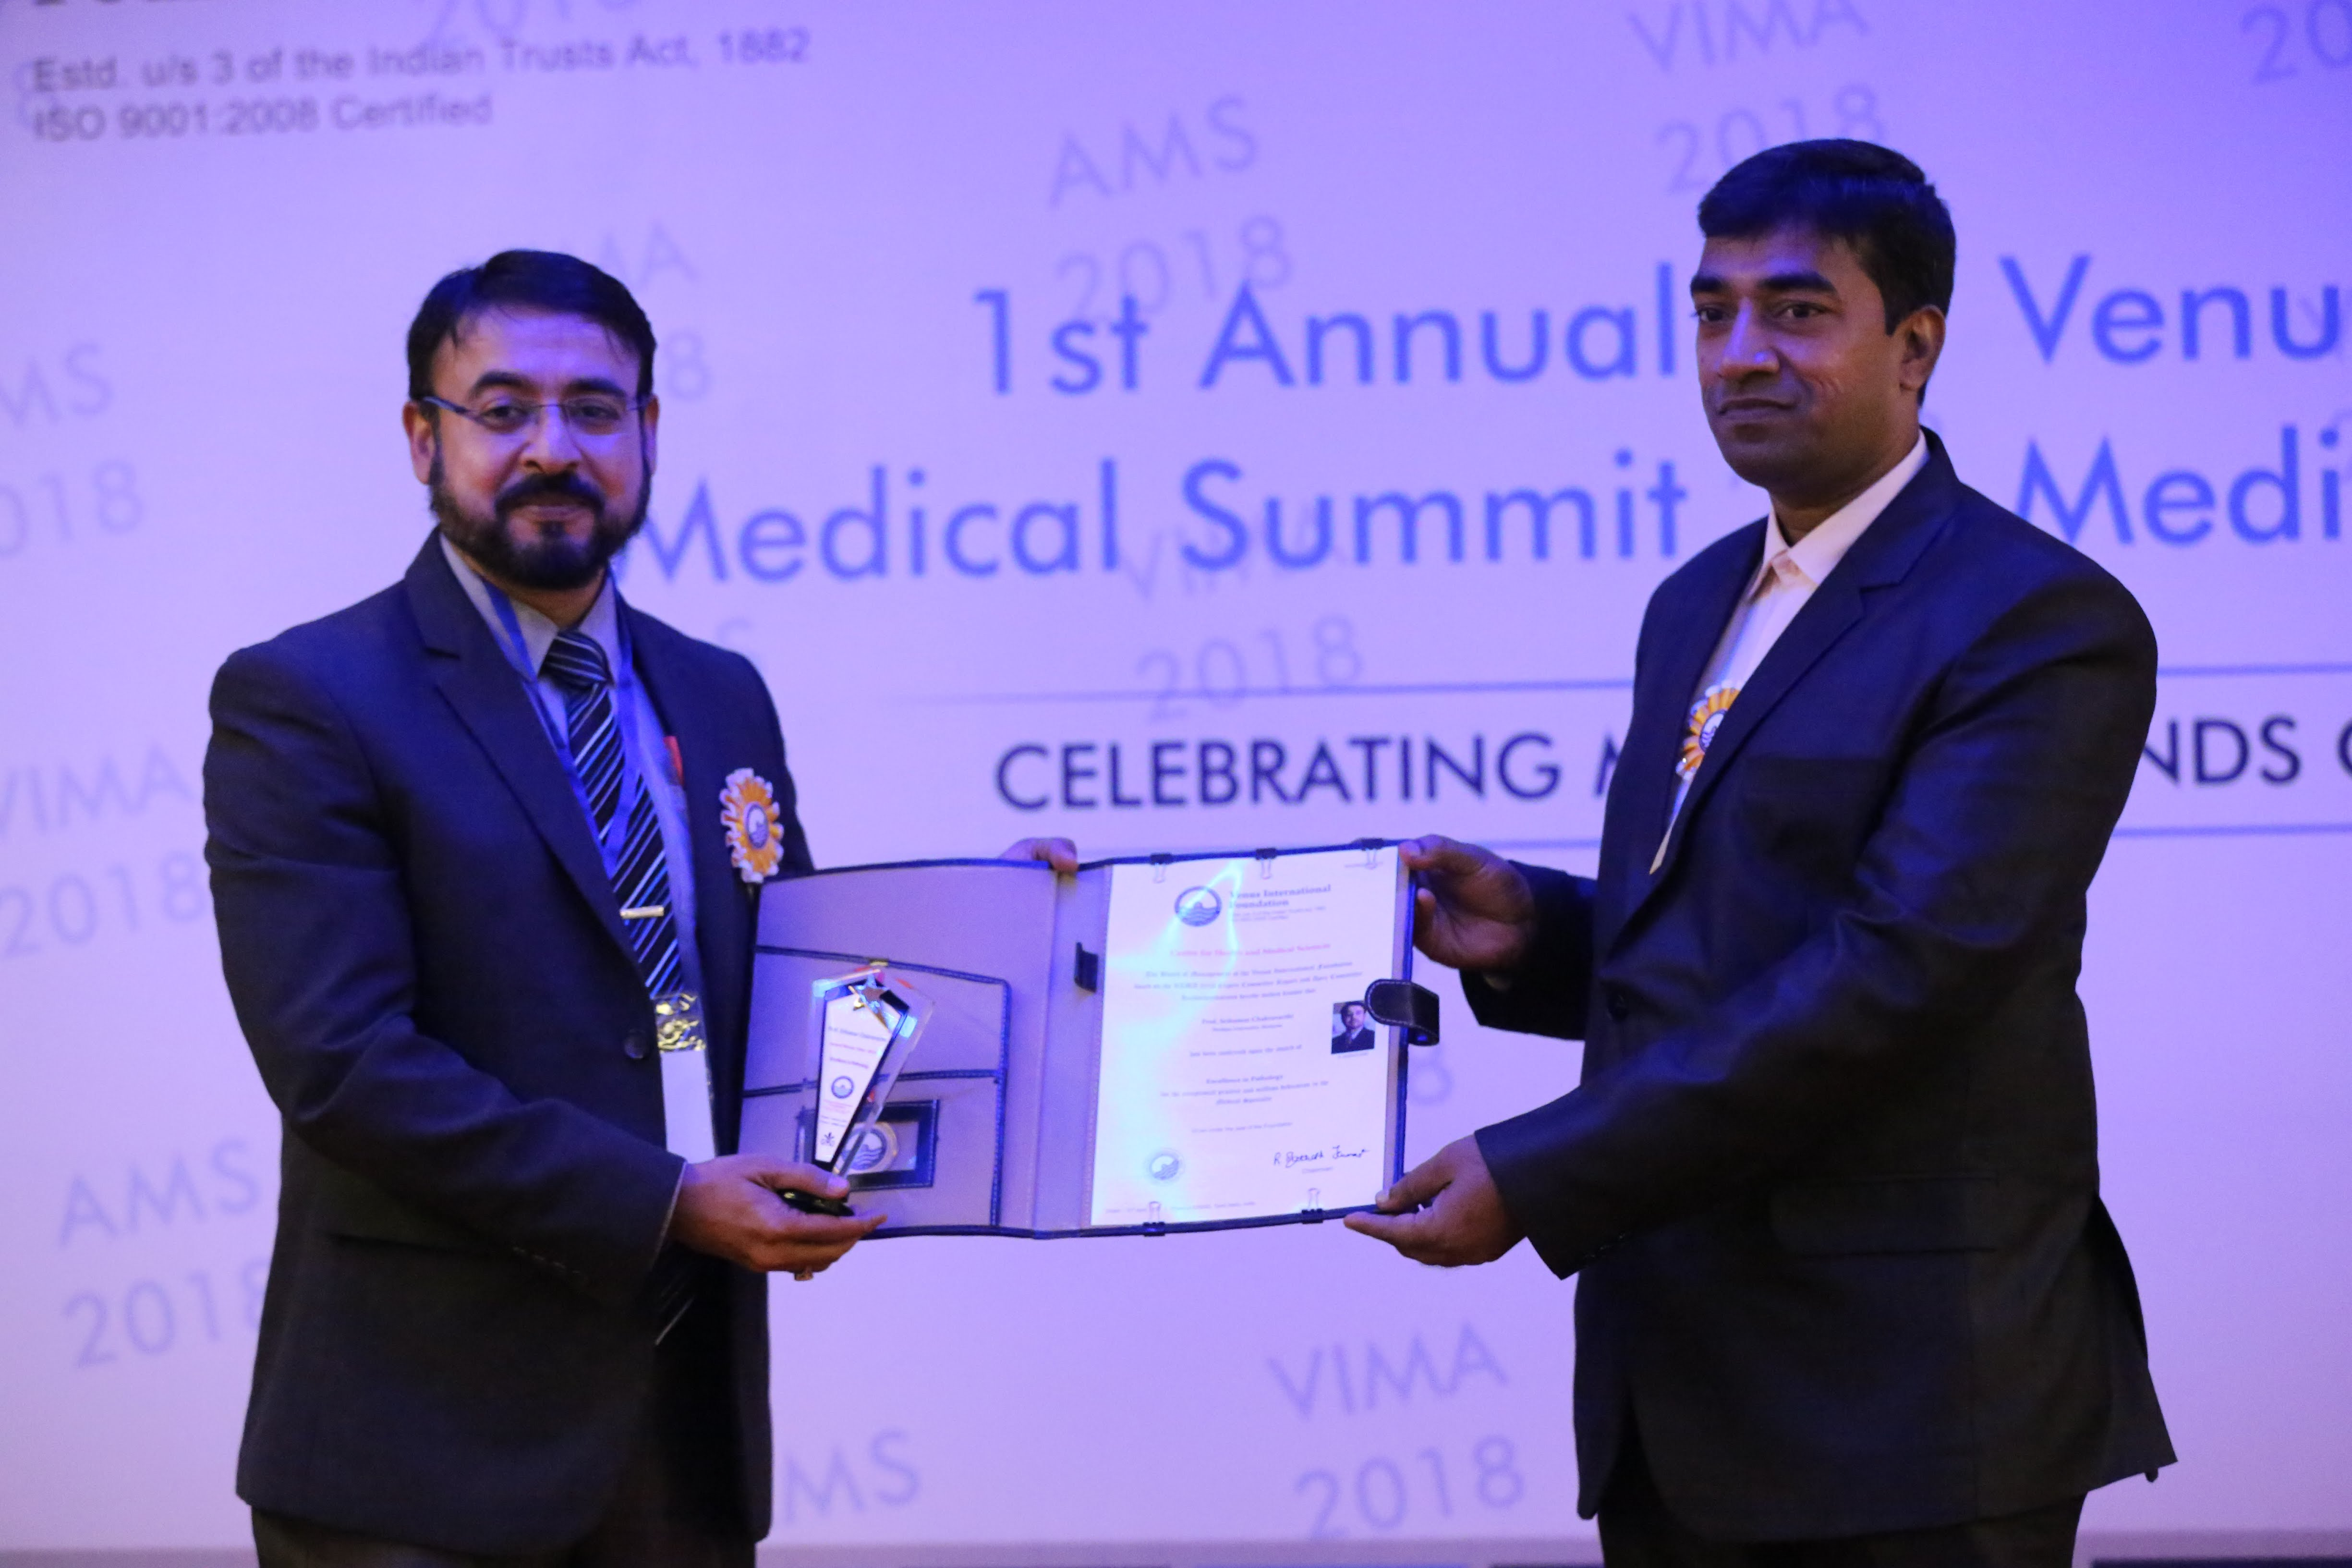 Prof Dr Srikumar Chakravarthi received the International Medical Award for Excellence in Pathology at the Annual Medical Summit